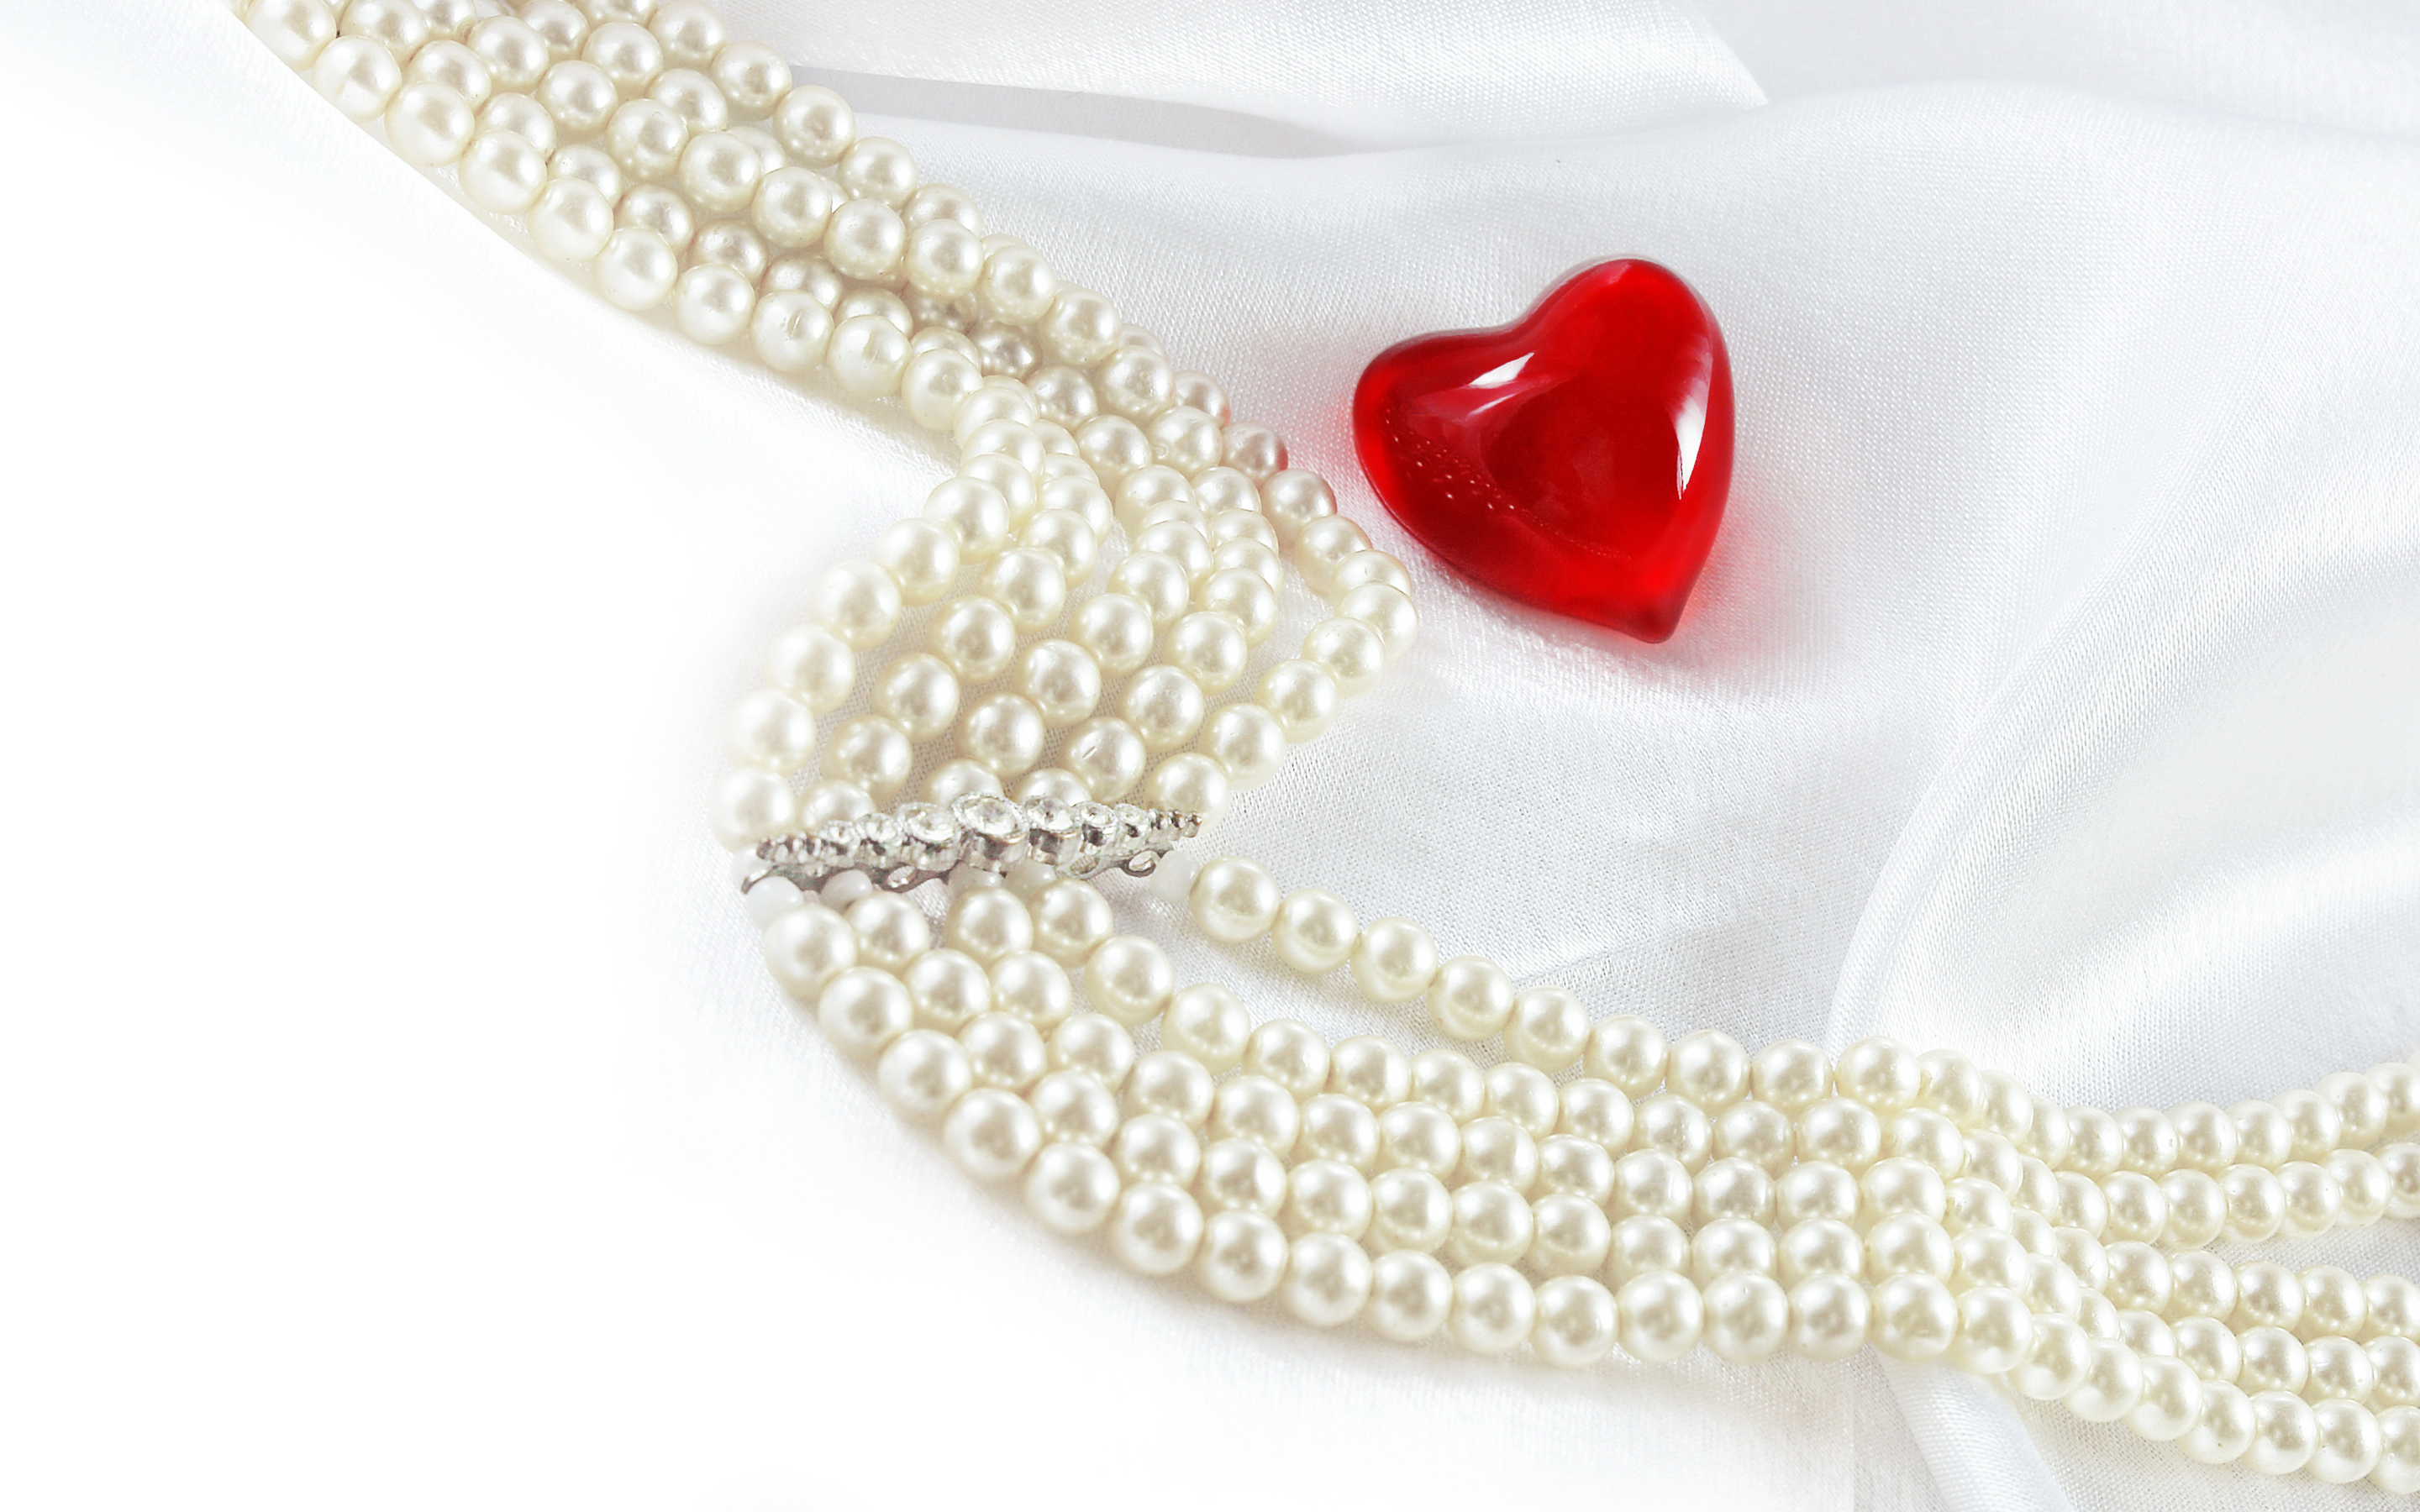 Jewelry Full Hd Wallpaper And Background Image 2880x1800